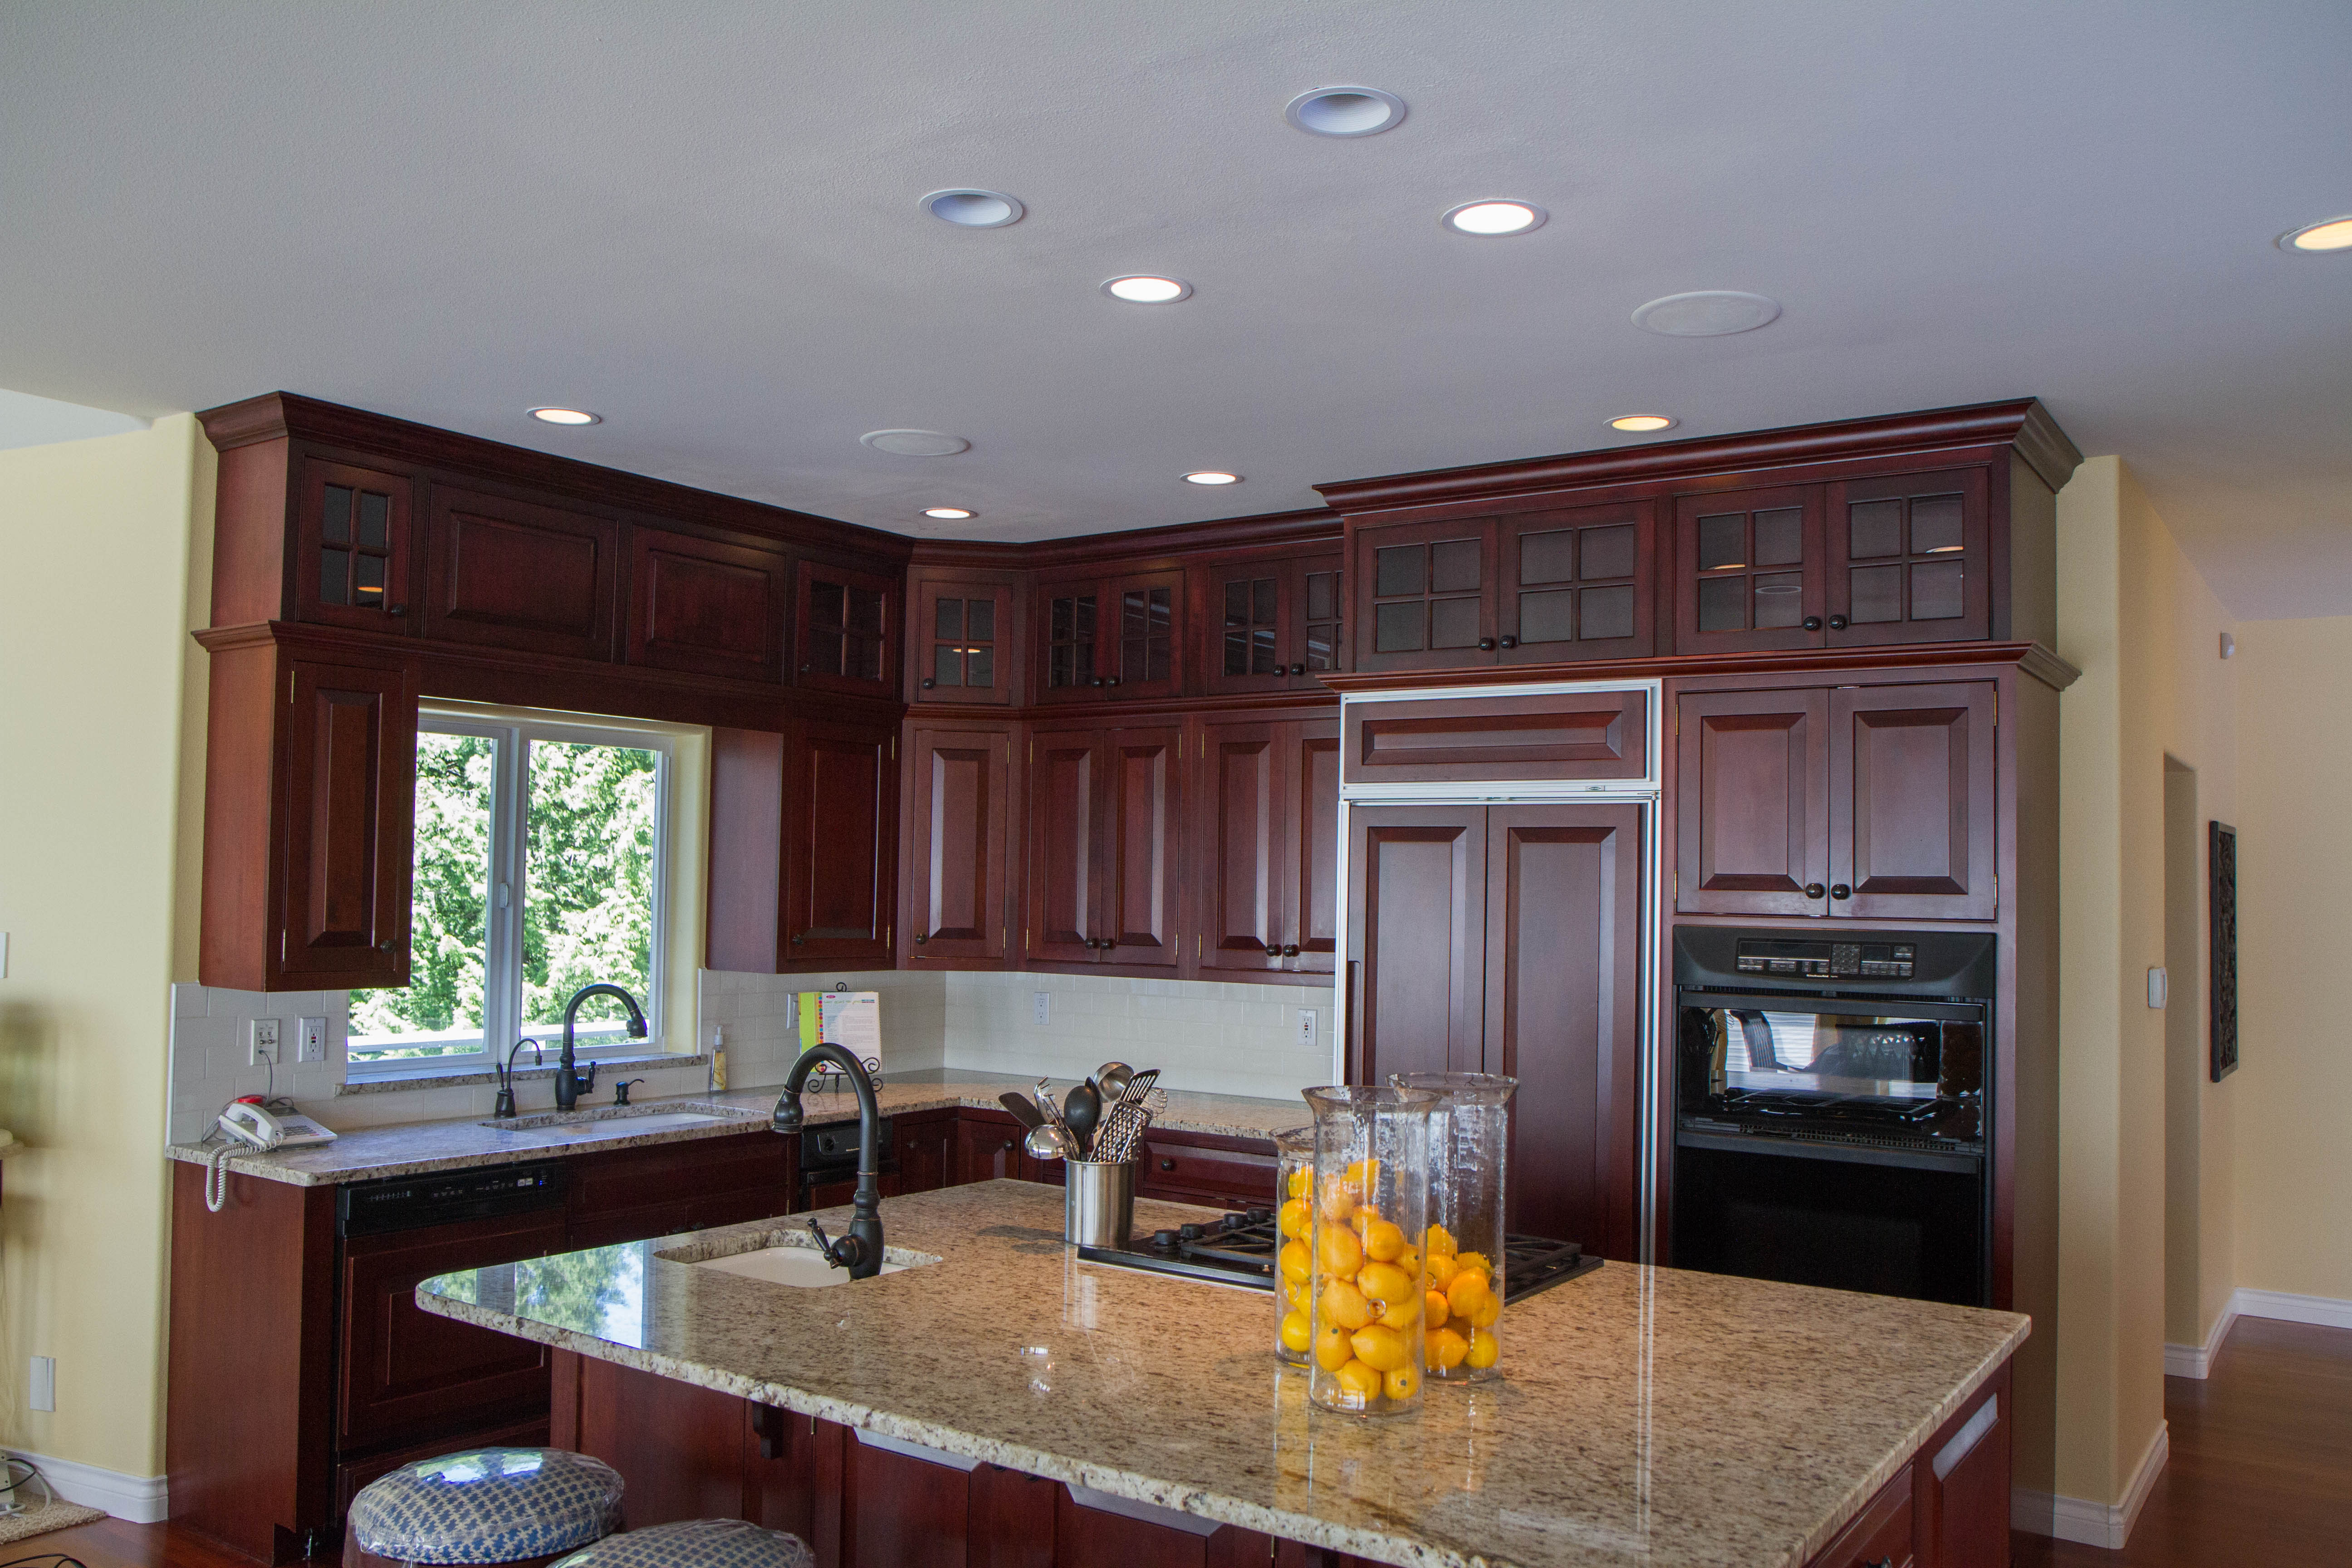 adding kitchen cabinets above existing cabinets | My Web Value